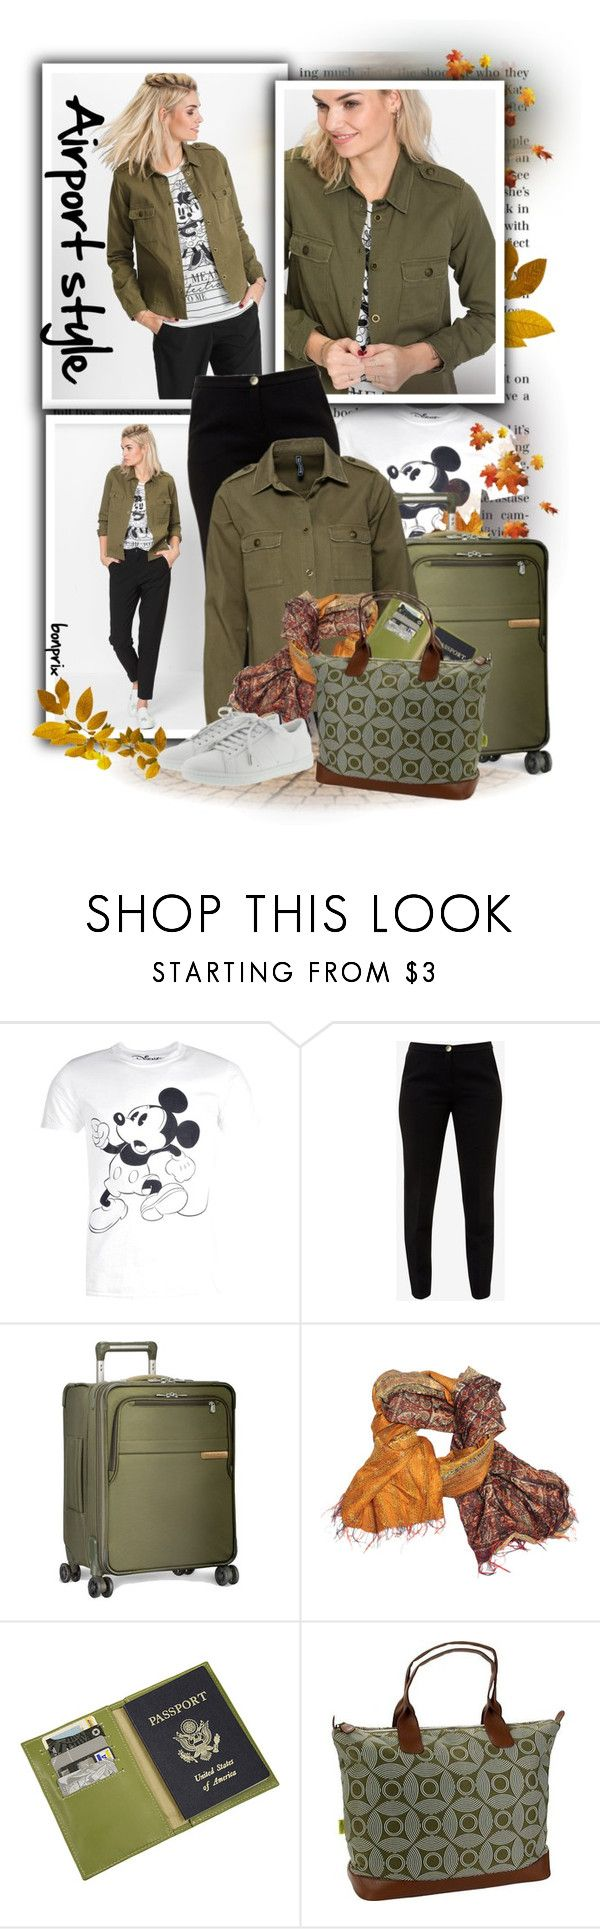 """""""Vintage Mickey Mouse Print T-Shirt"""" by tasha1973 ❤ liked on Polyvore featuring Ciel, Ted Baker, Briggs & Riley, Mélange Home, Piel Leather, Amy Butler, Yves Saint Laurent and vintage"""